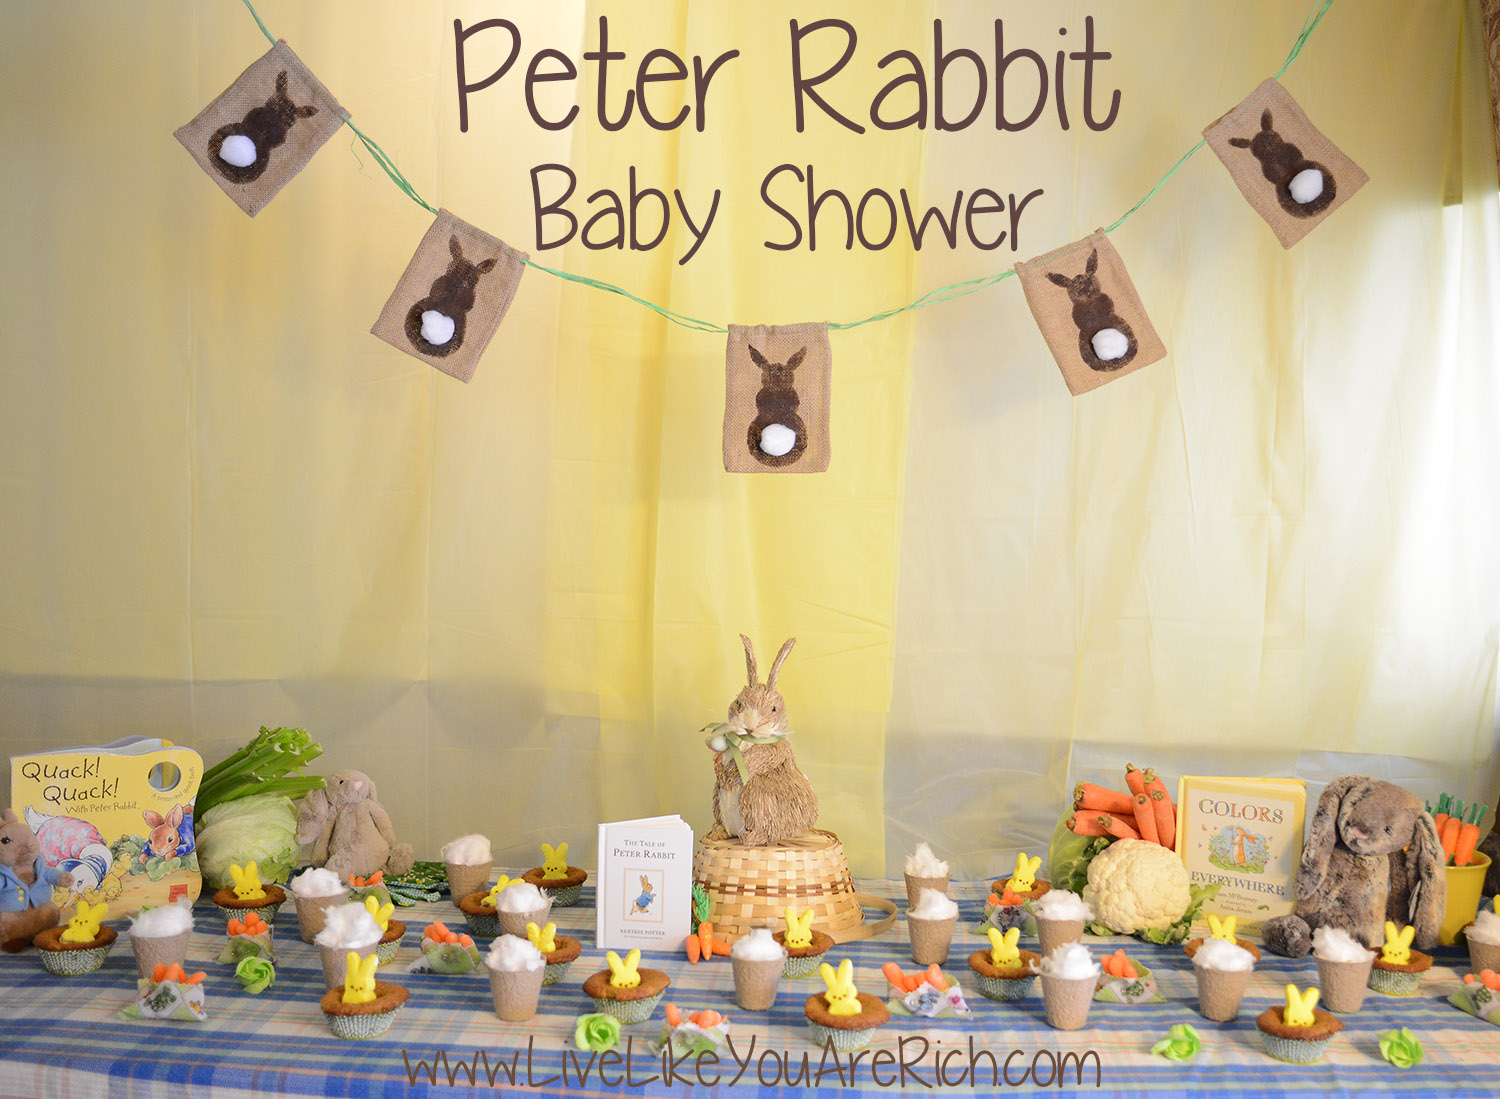 alfa img showing peter rabbit baby shower